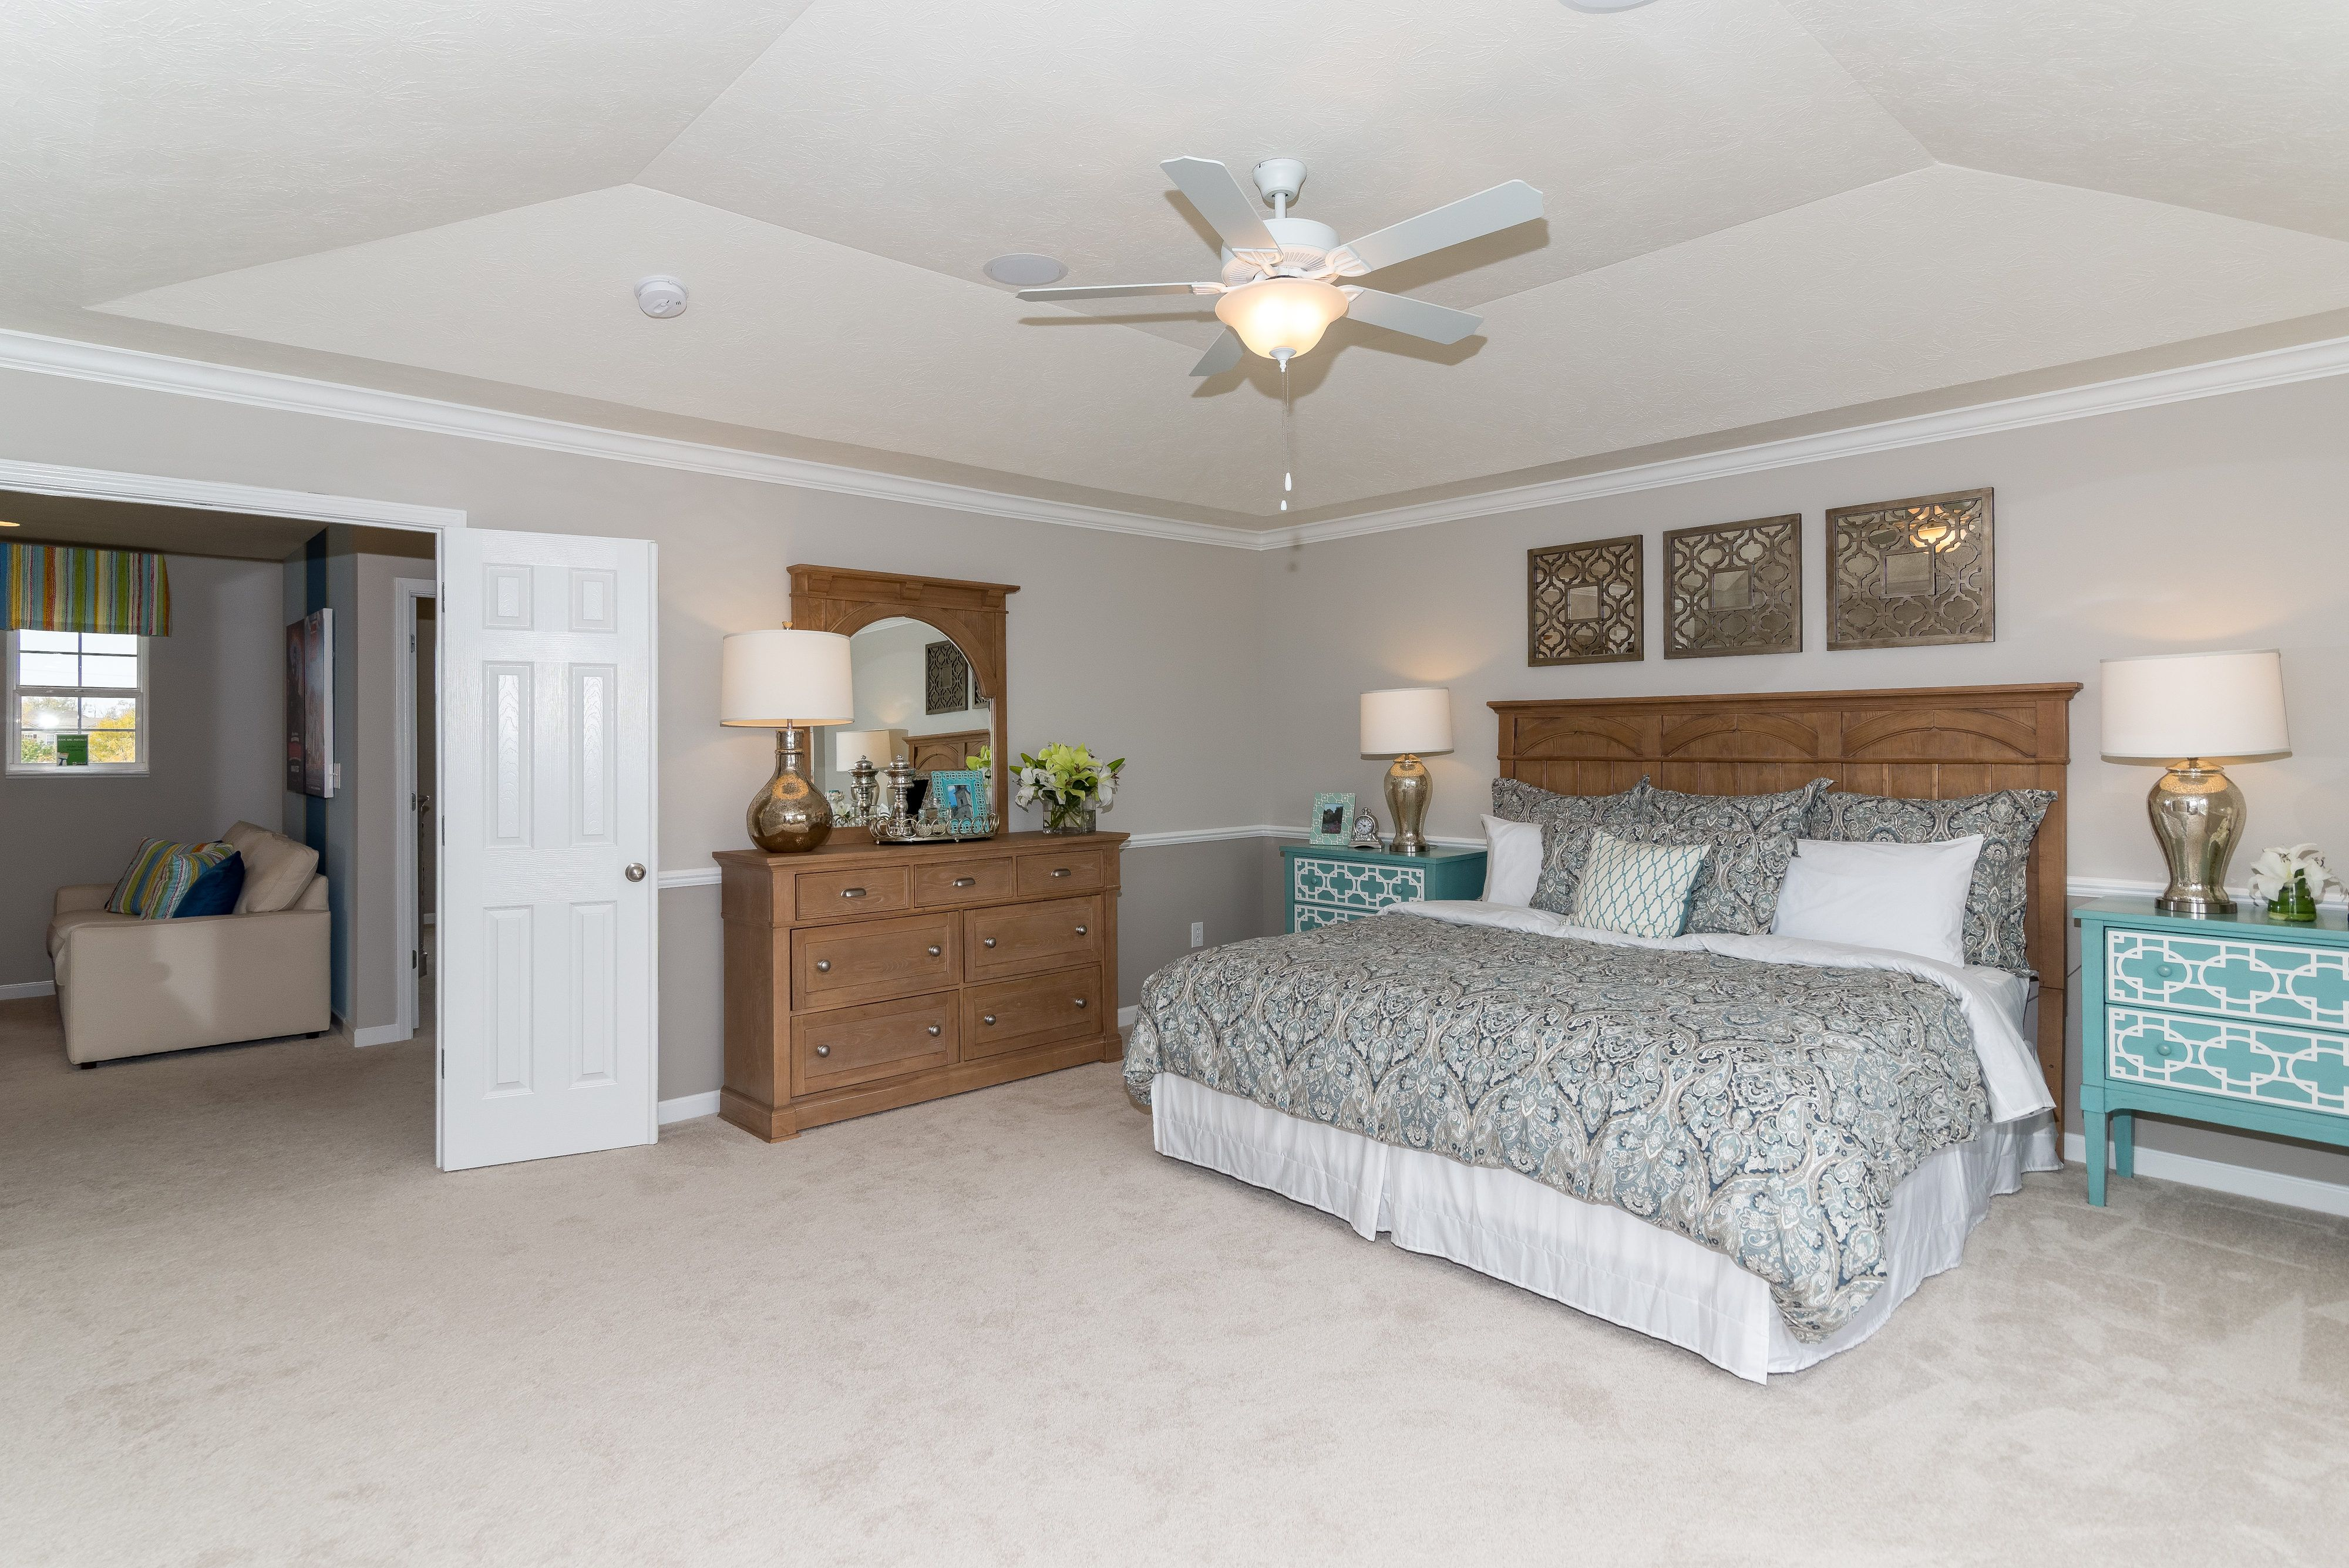 Spruce Master Bedroom with Double Doors Model homes